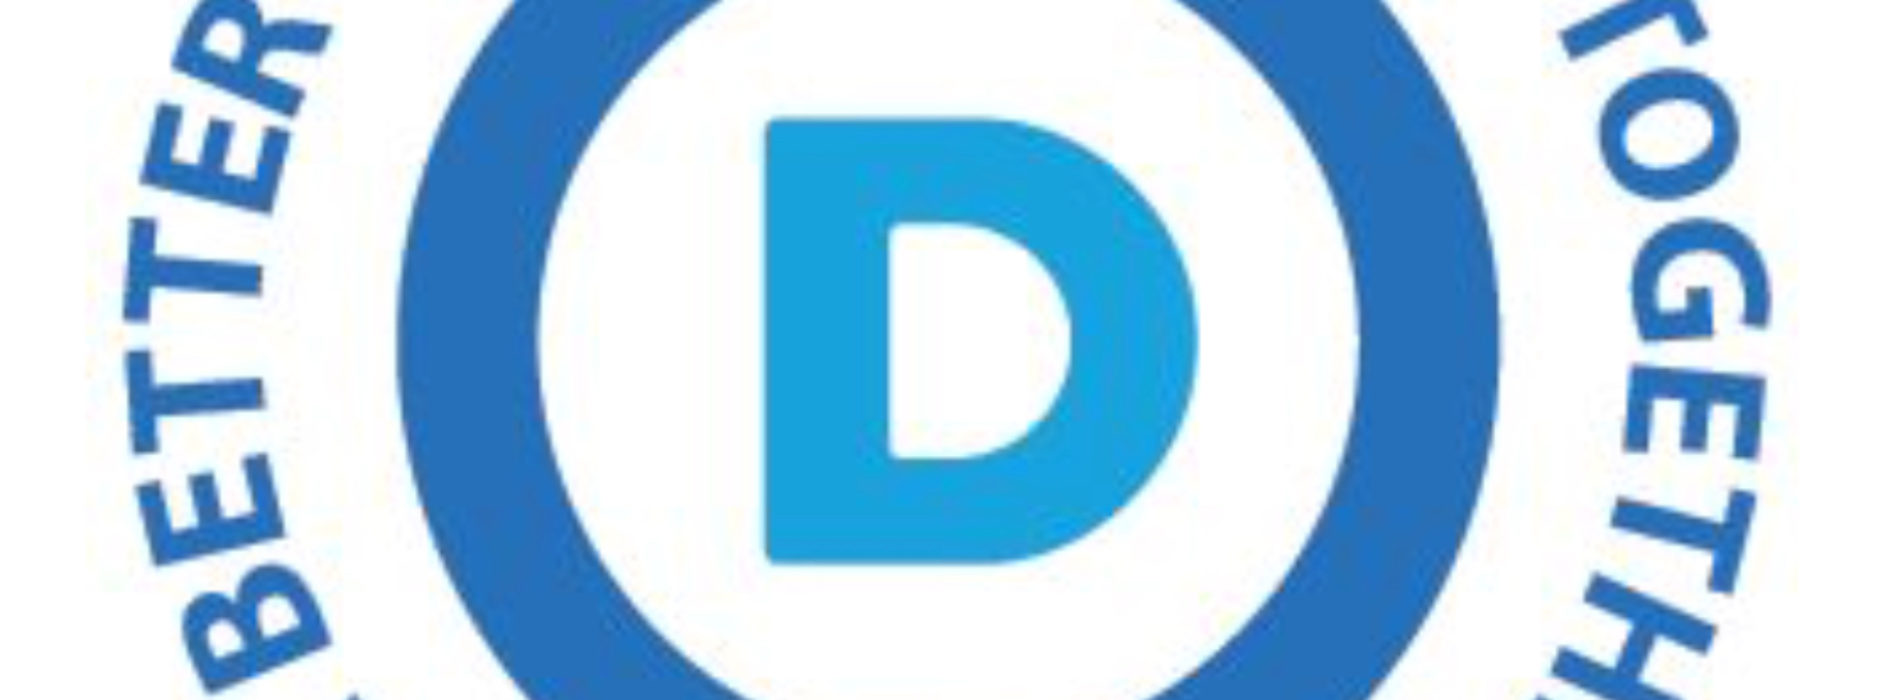 Grant County Democratic Party Releases Statement on Zay's Racist Remarks